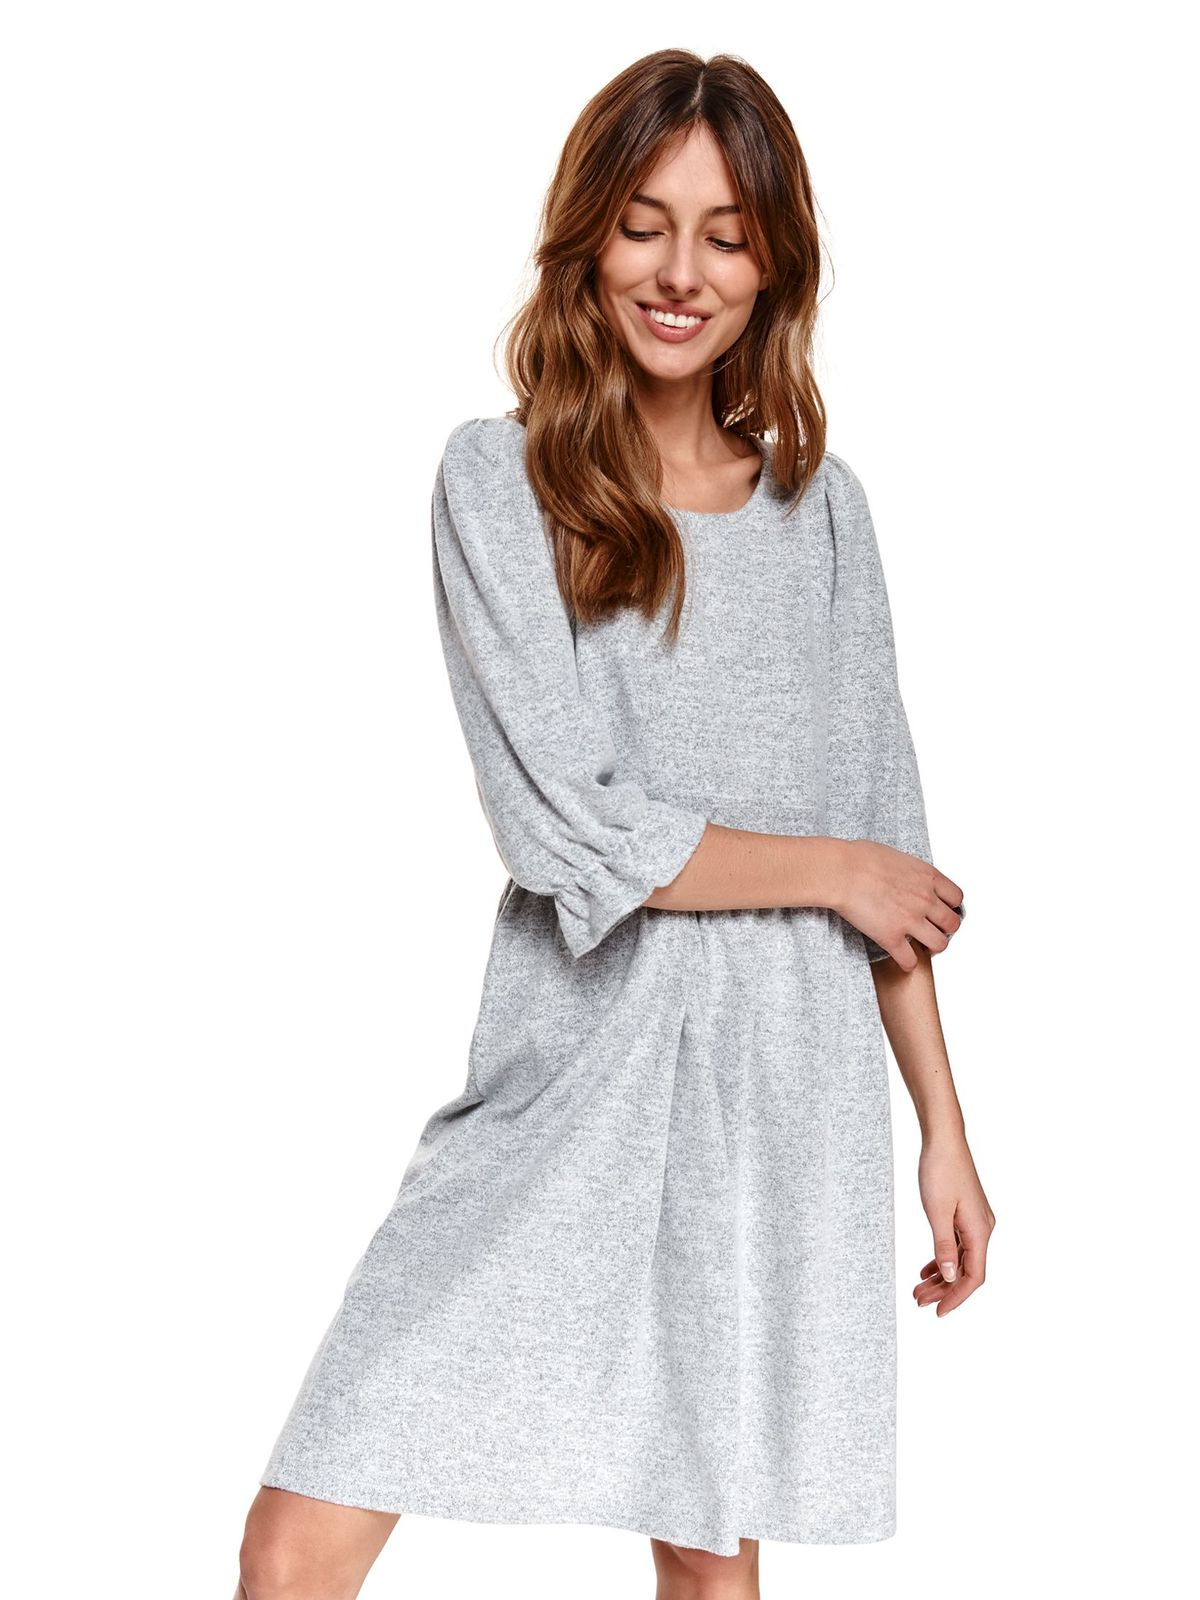 Grey dress loose fit with ruffle details from elastic and fine fabric